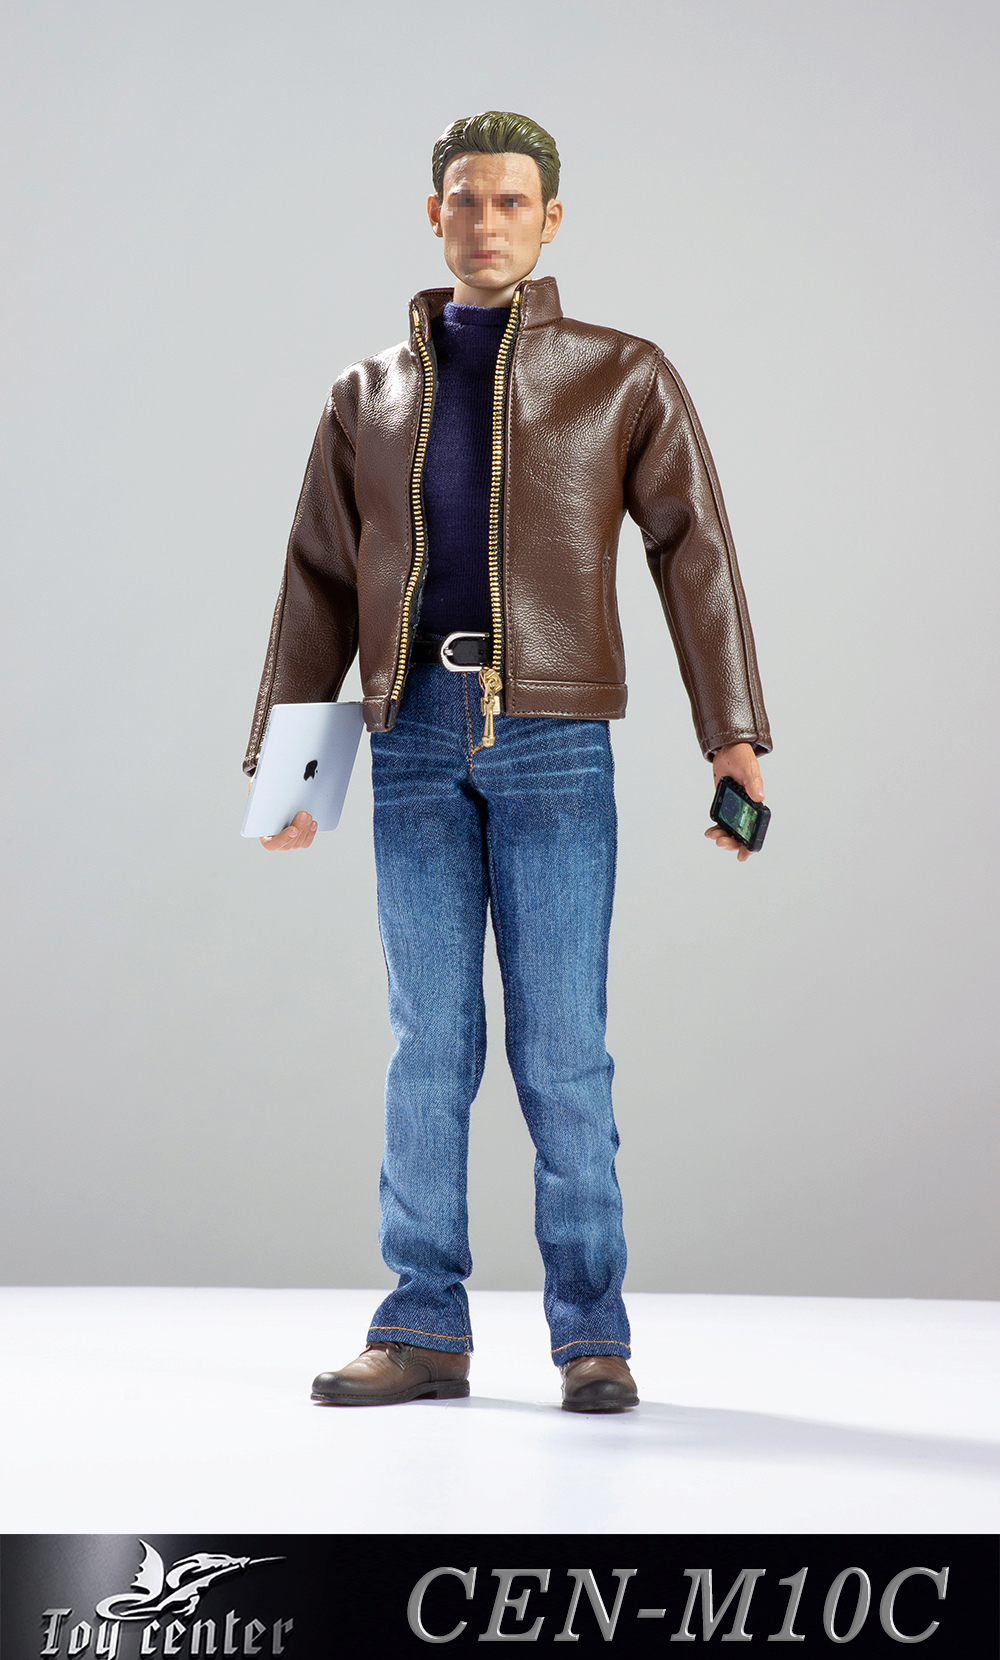 clothes - NEW PRODUCT: Toy center: 1/6 US team trend leather suit - a total of three colors A / B / C (CEN-M10 #) 13143410